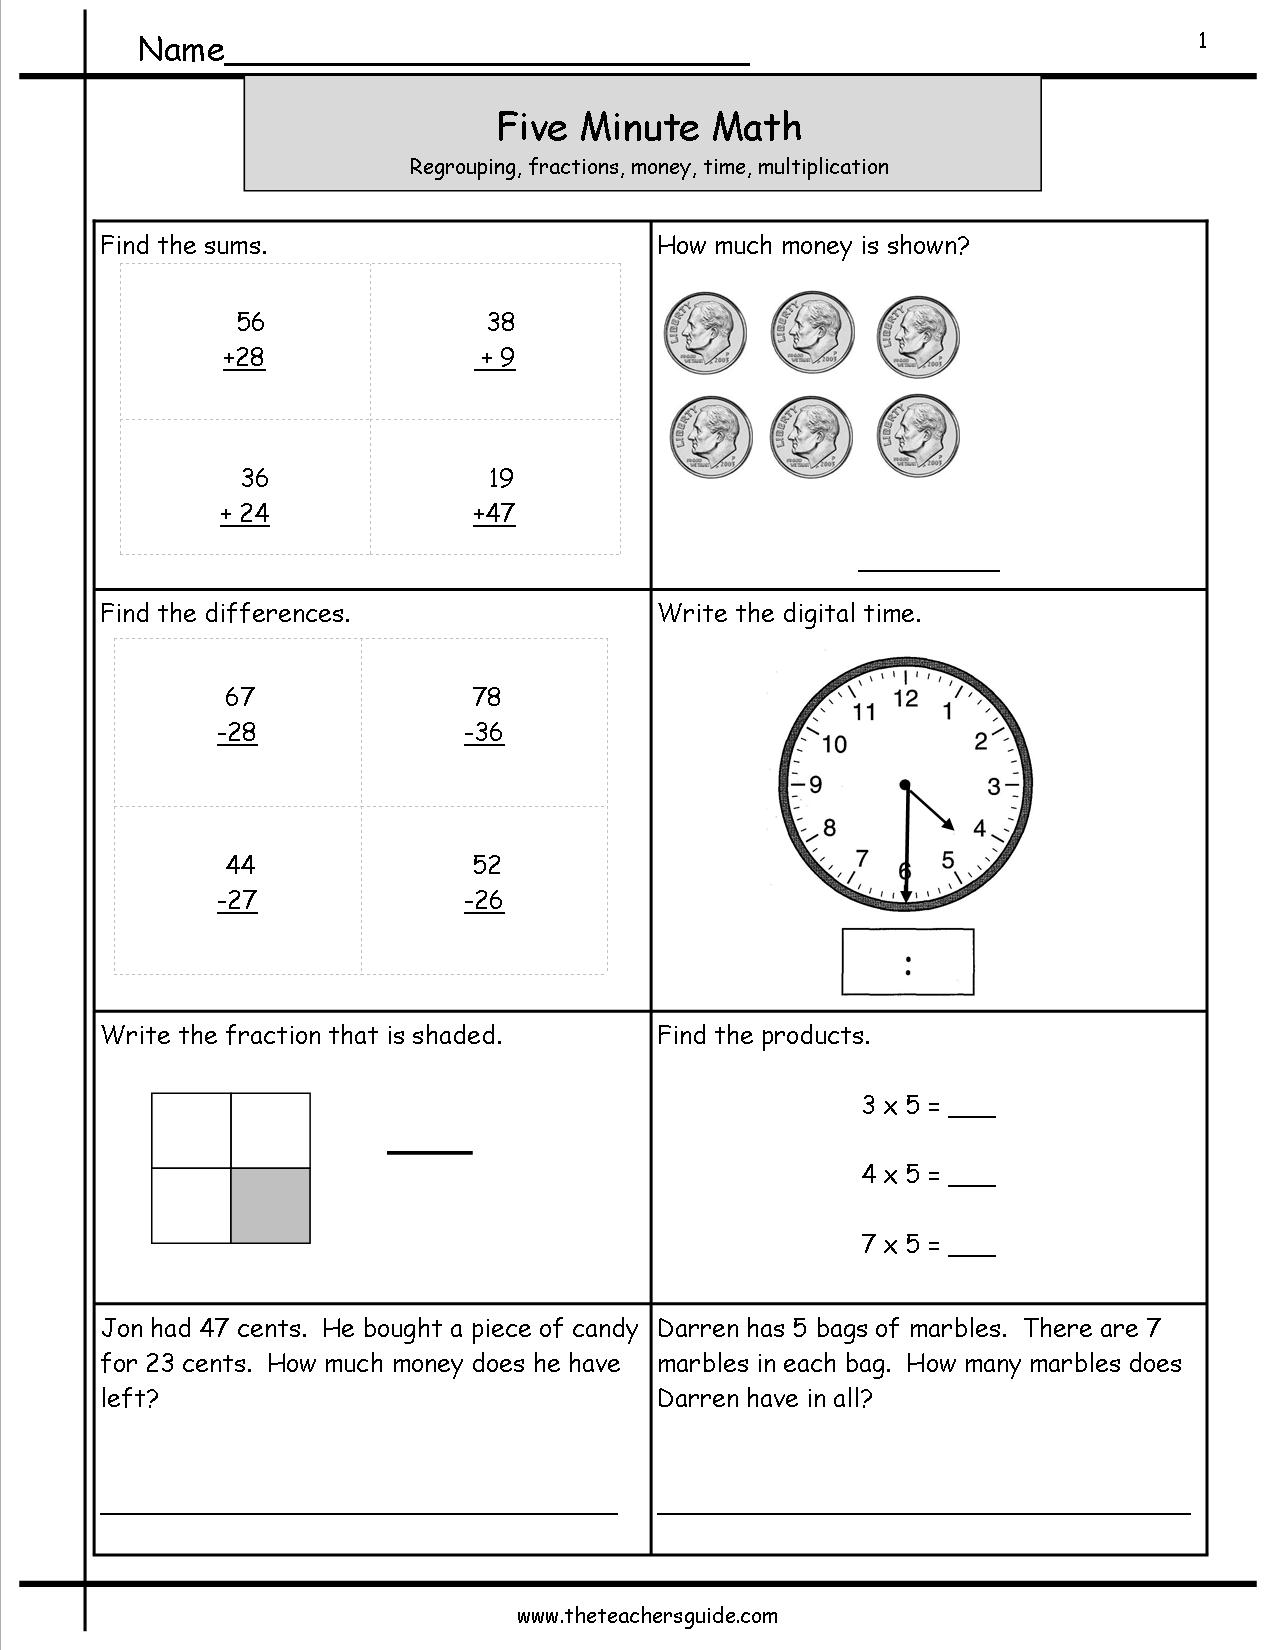 hight resolution of Five Minute Math Review Worksheets from The Teacher's Guide